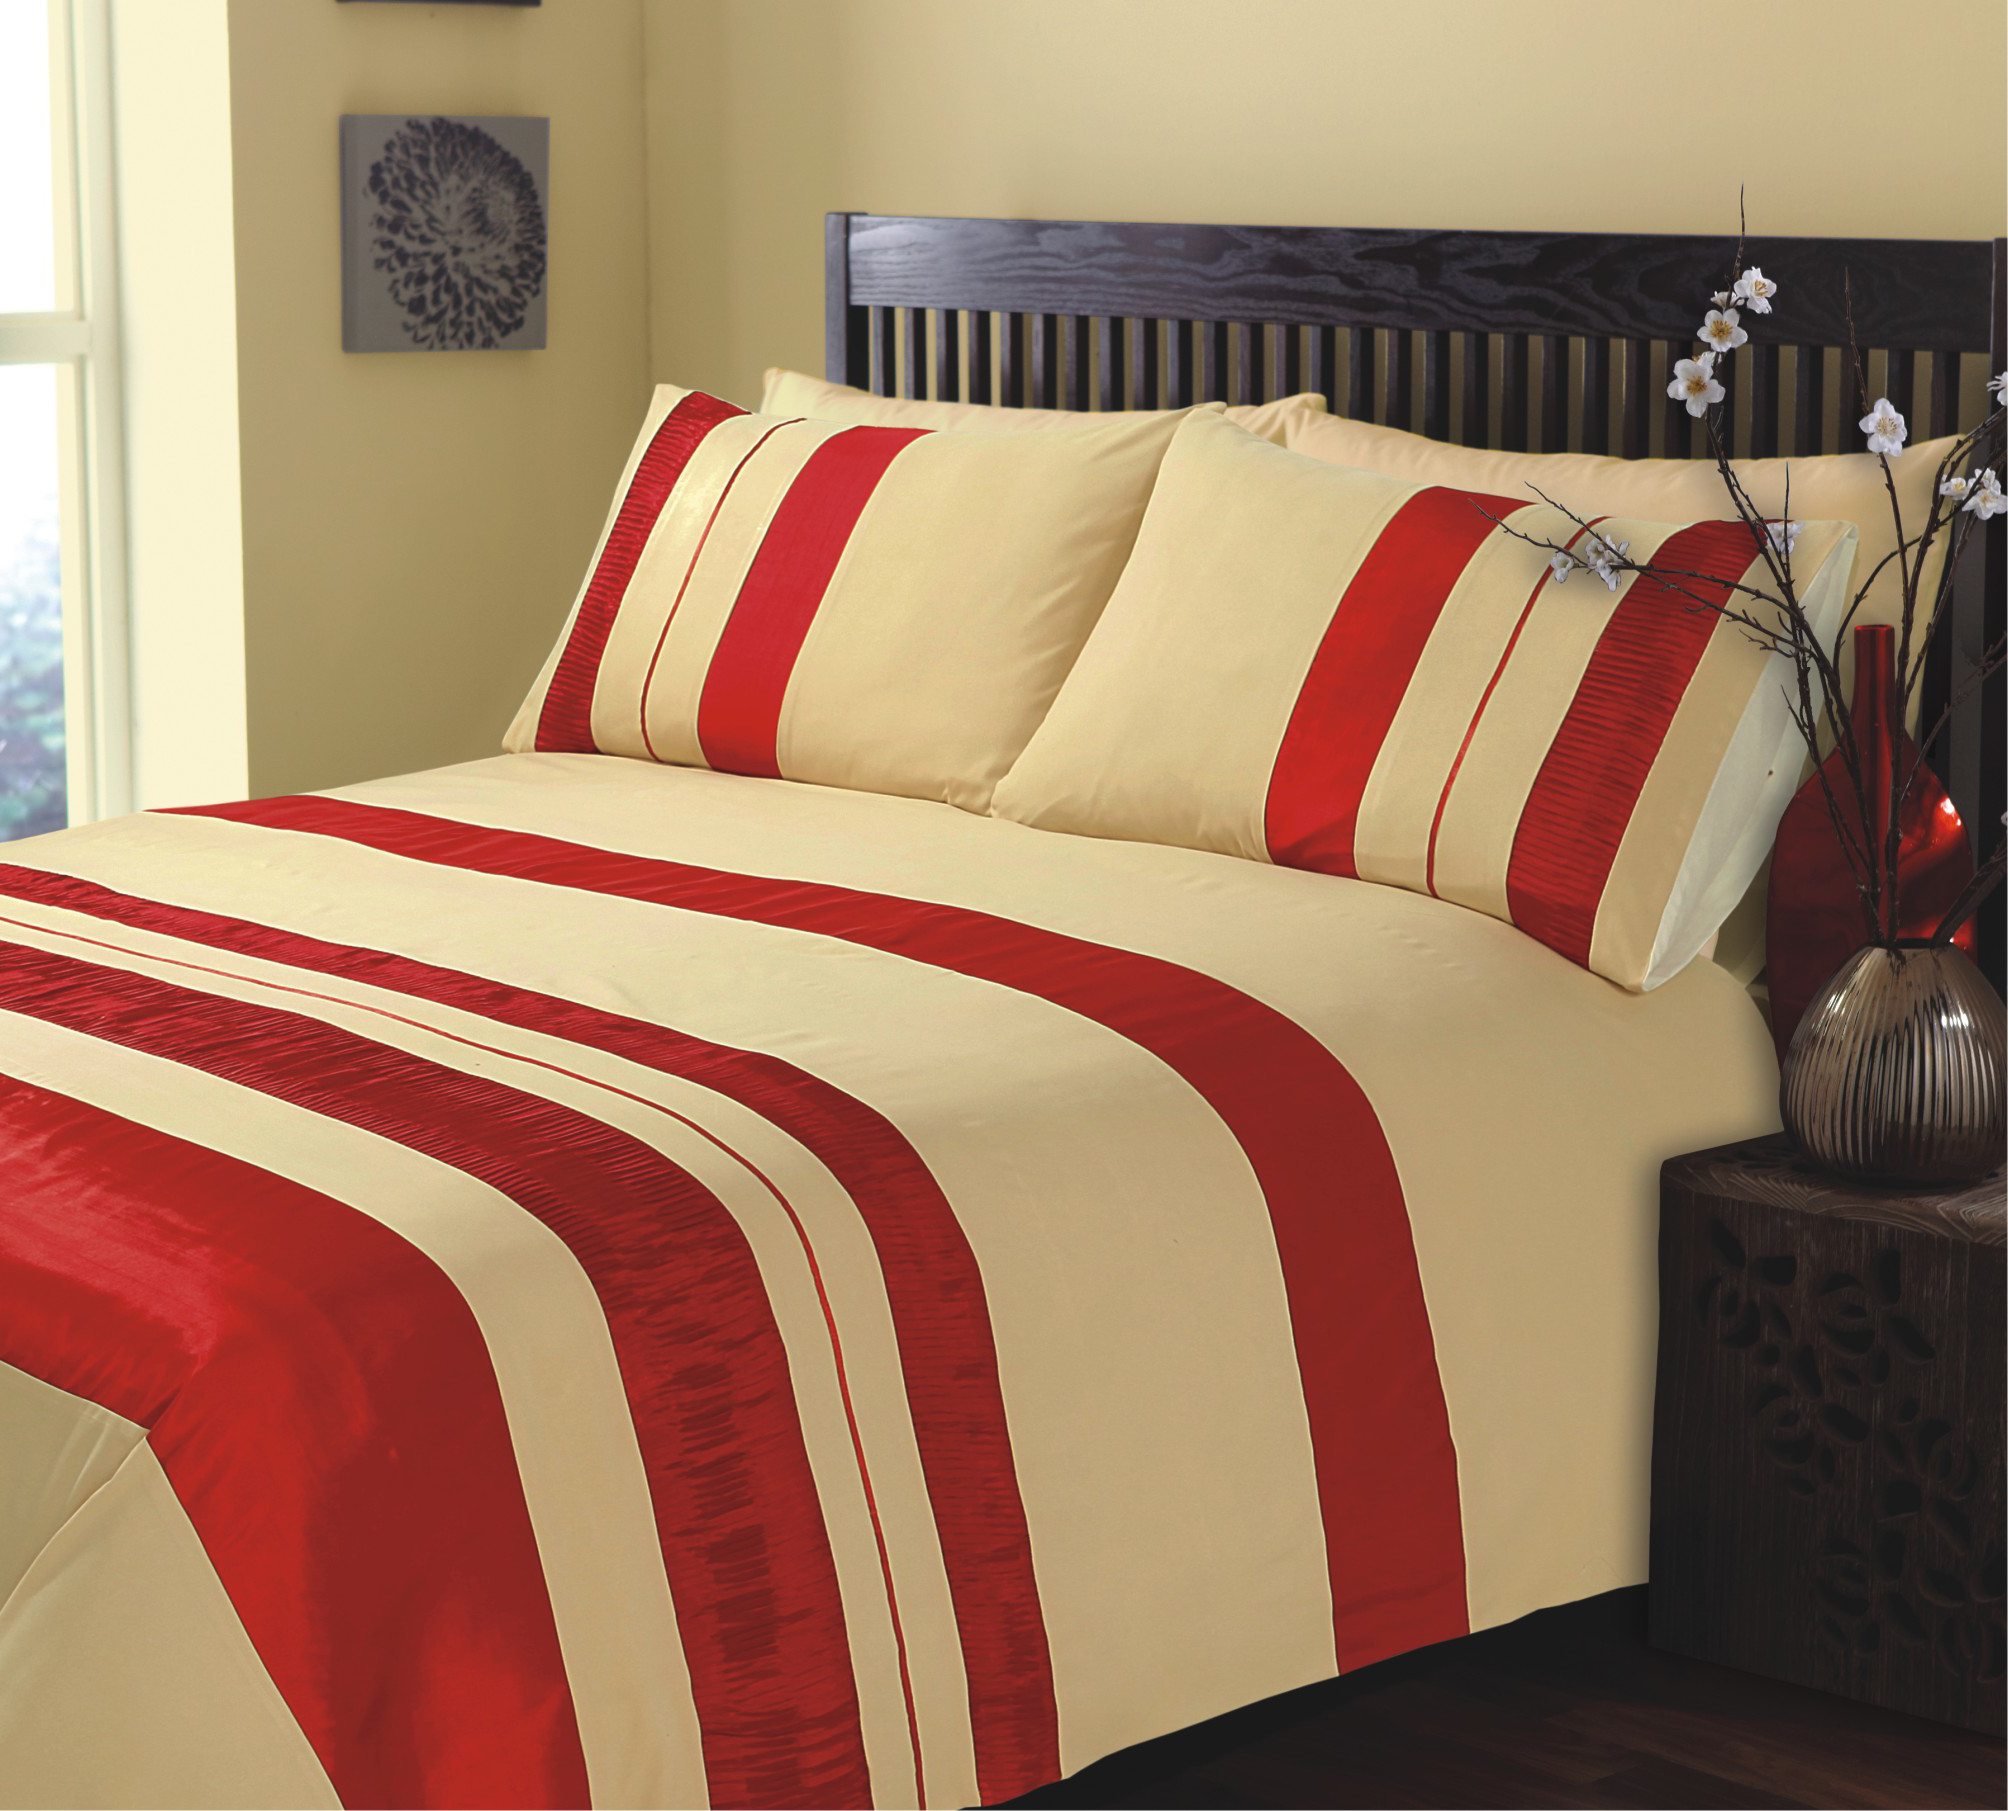 Double Size Ripple And Plain Stripe Red And Gold Duvet Cover Bedding Set EBay